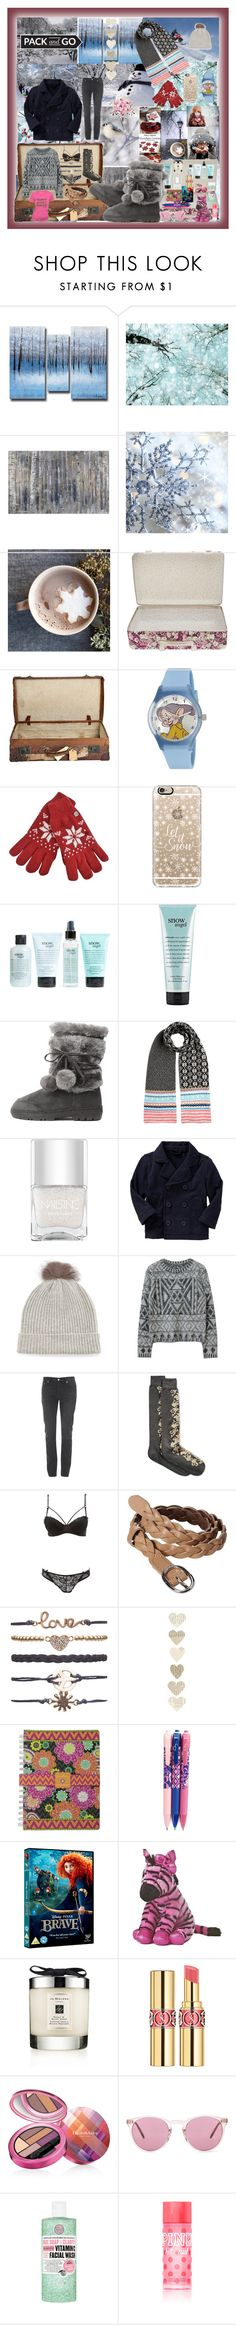 """Pack n Go"" by angelihenkle ❤ liked on Polyvore featuring Liberty, Ingersoll, Casetify, philosophy, Accessorize, Nails Inc., Gap, Neiman Marcus, Chicnova Fashion and BLK DNM"